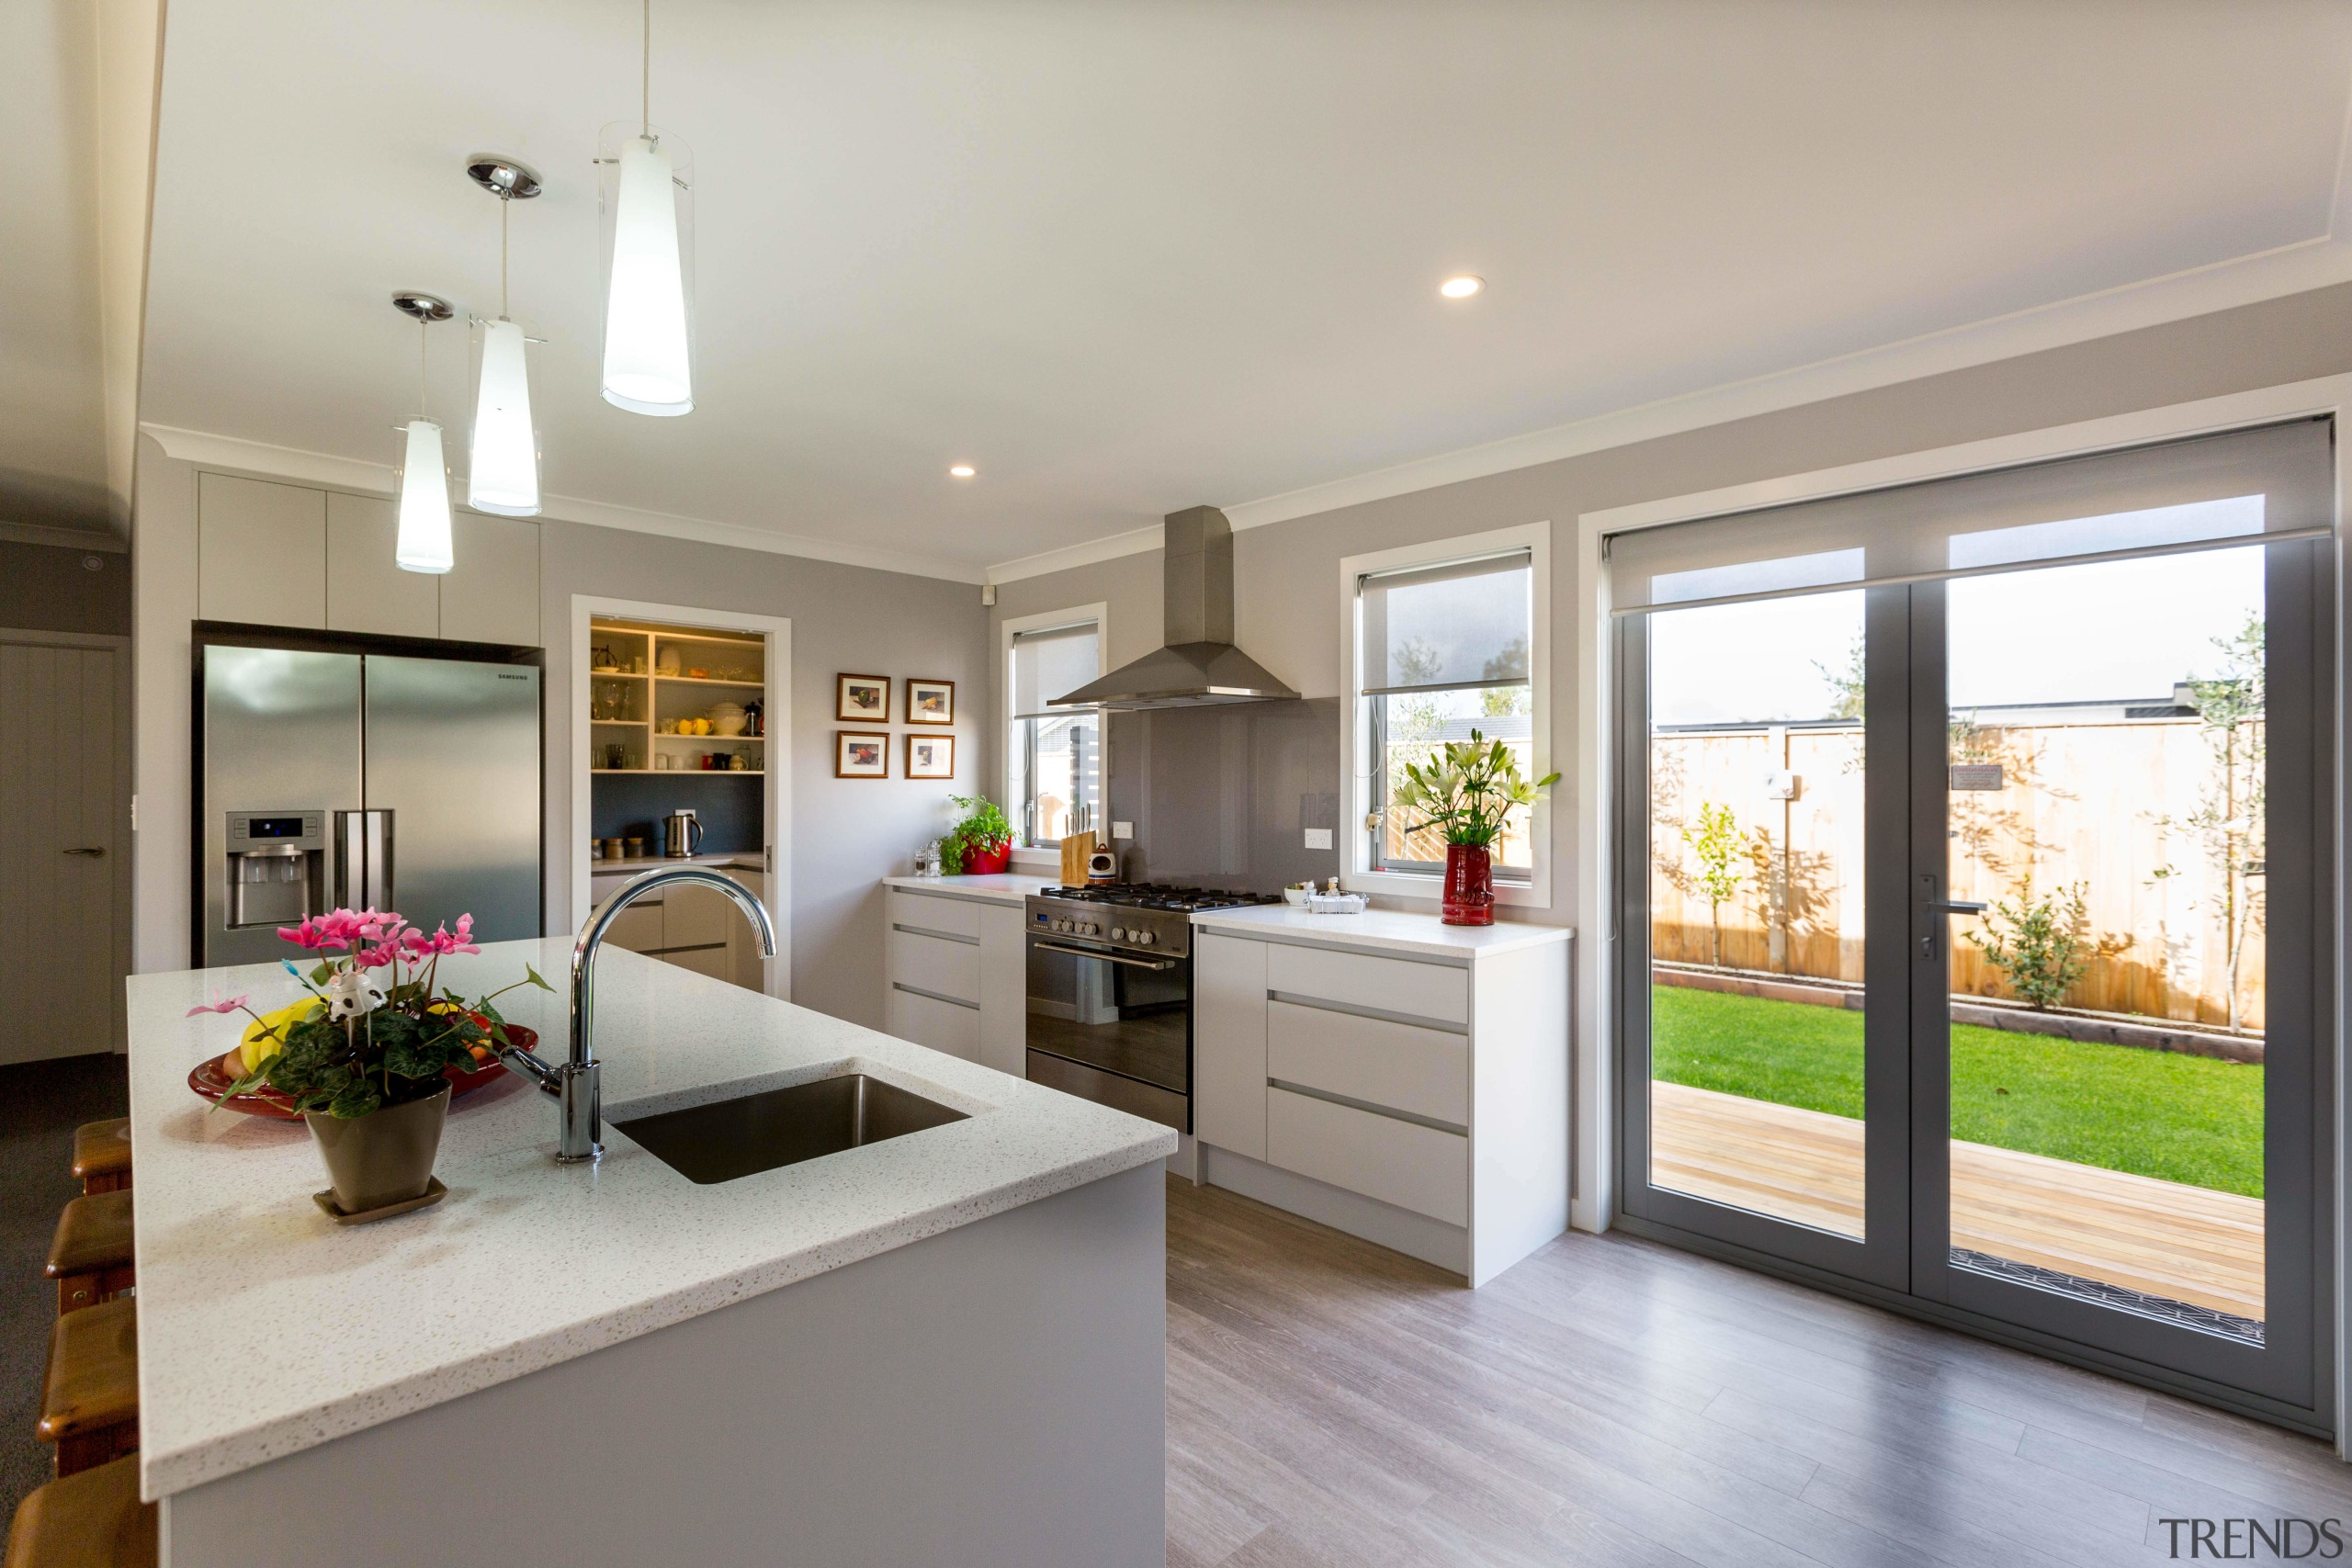 The kitchen is the centre of operations in countertop, home, interior design, kitchen, property, real estate, window, gray